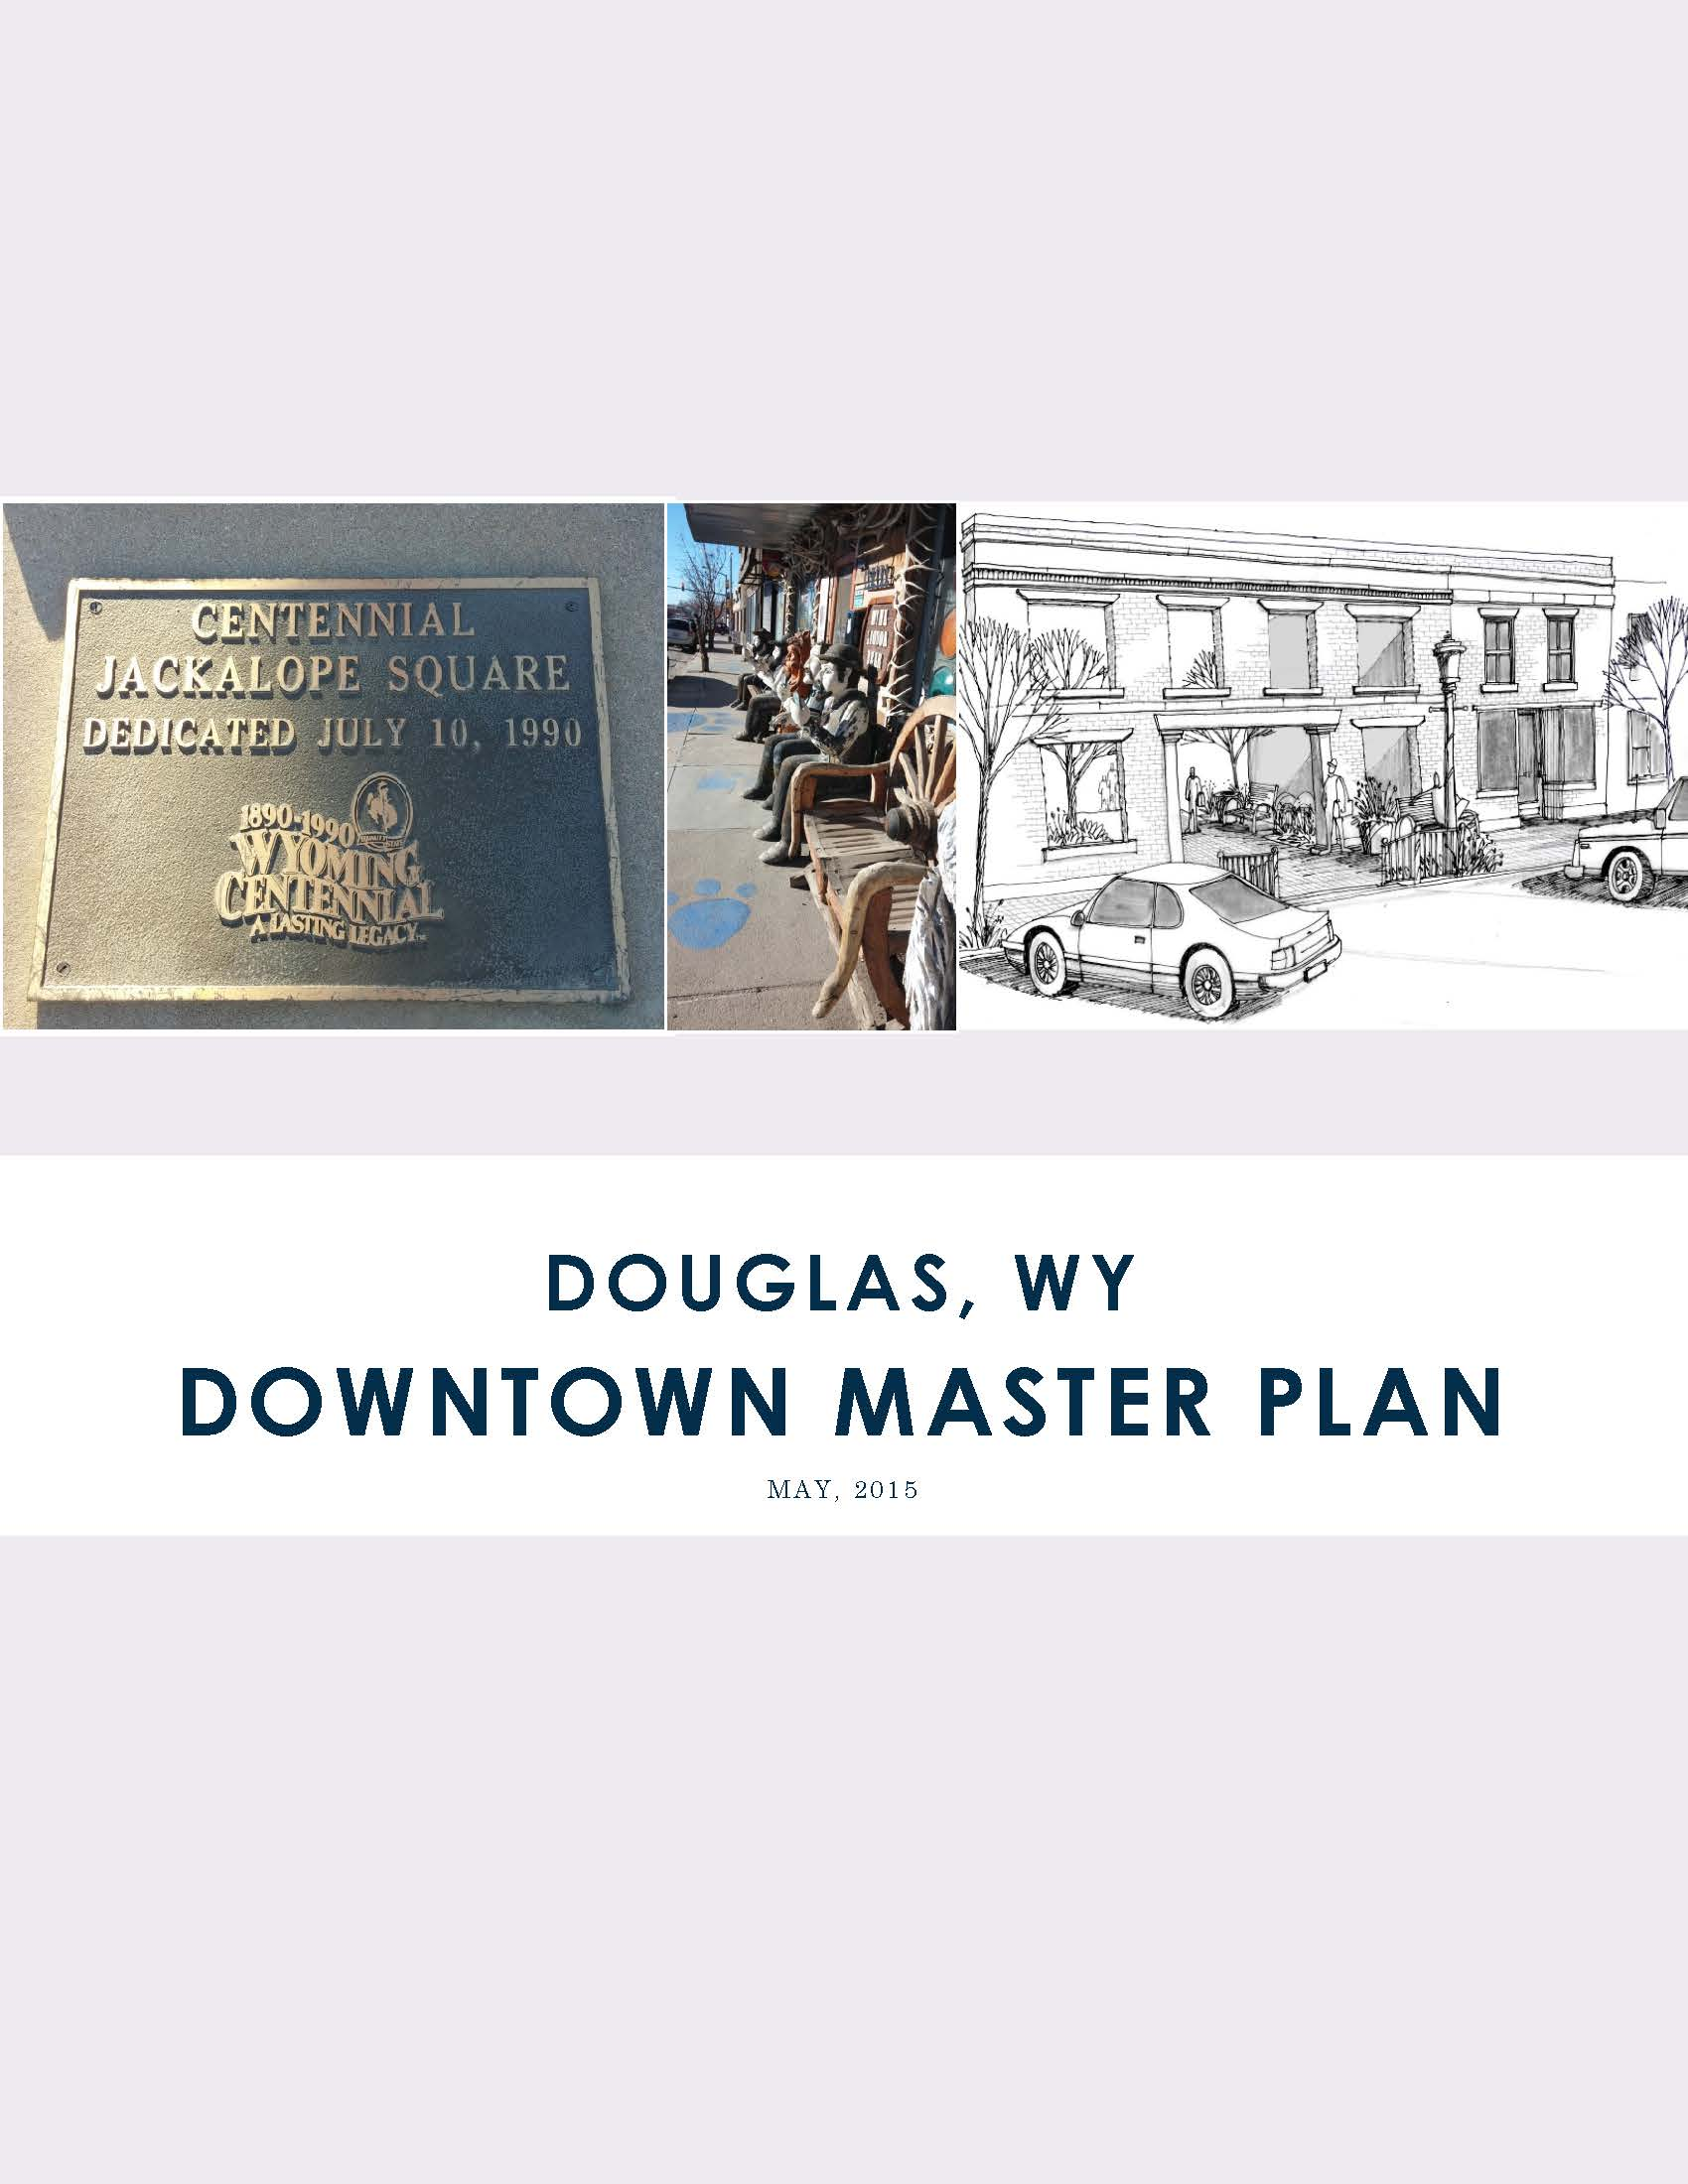 DouglasMasterPlanFINAL-DocumentCover.jpg